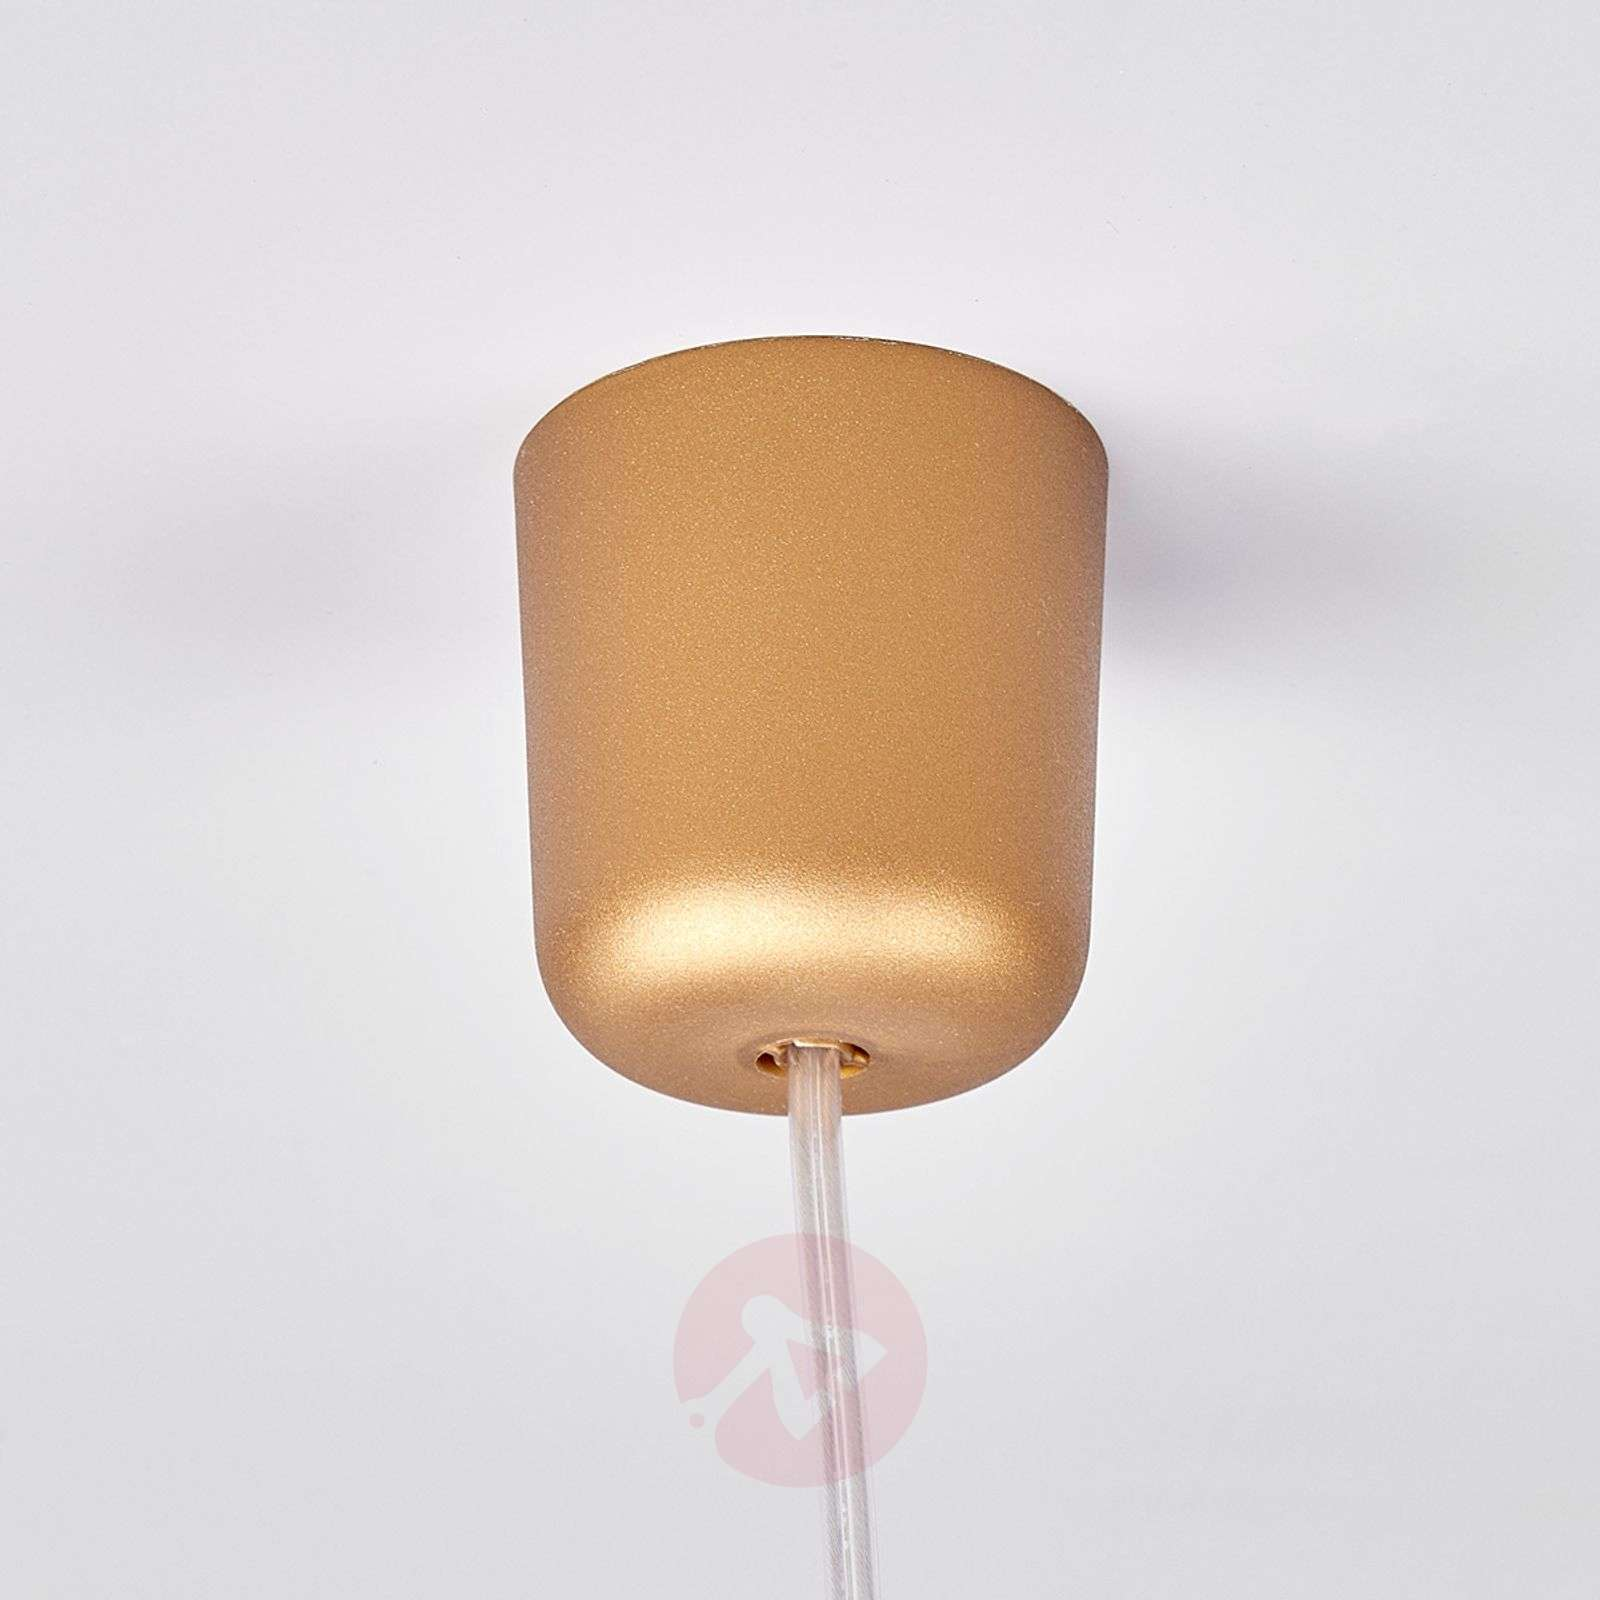 Exclusive LED hanging lamp Cara, E27-6722278-01